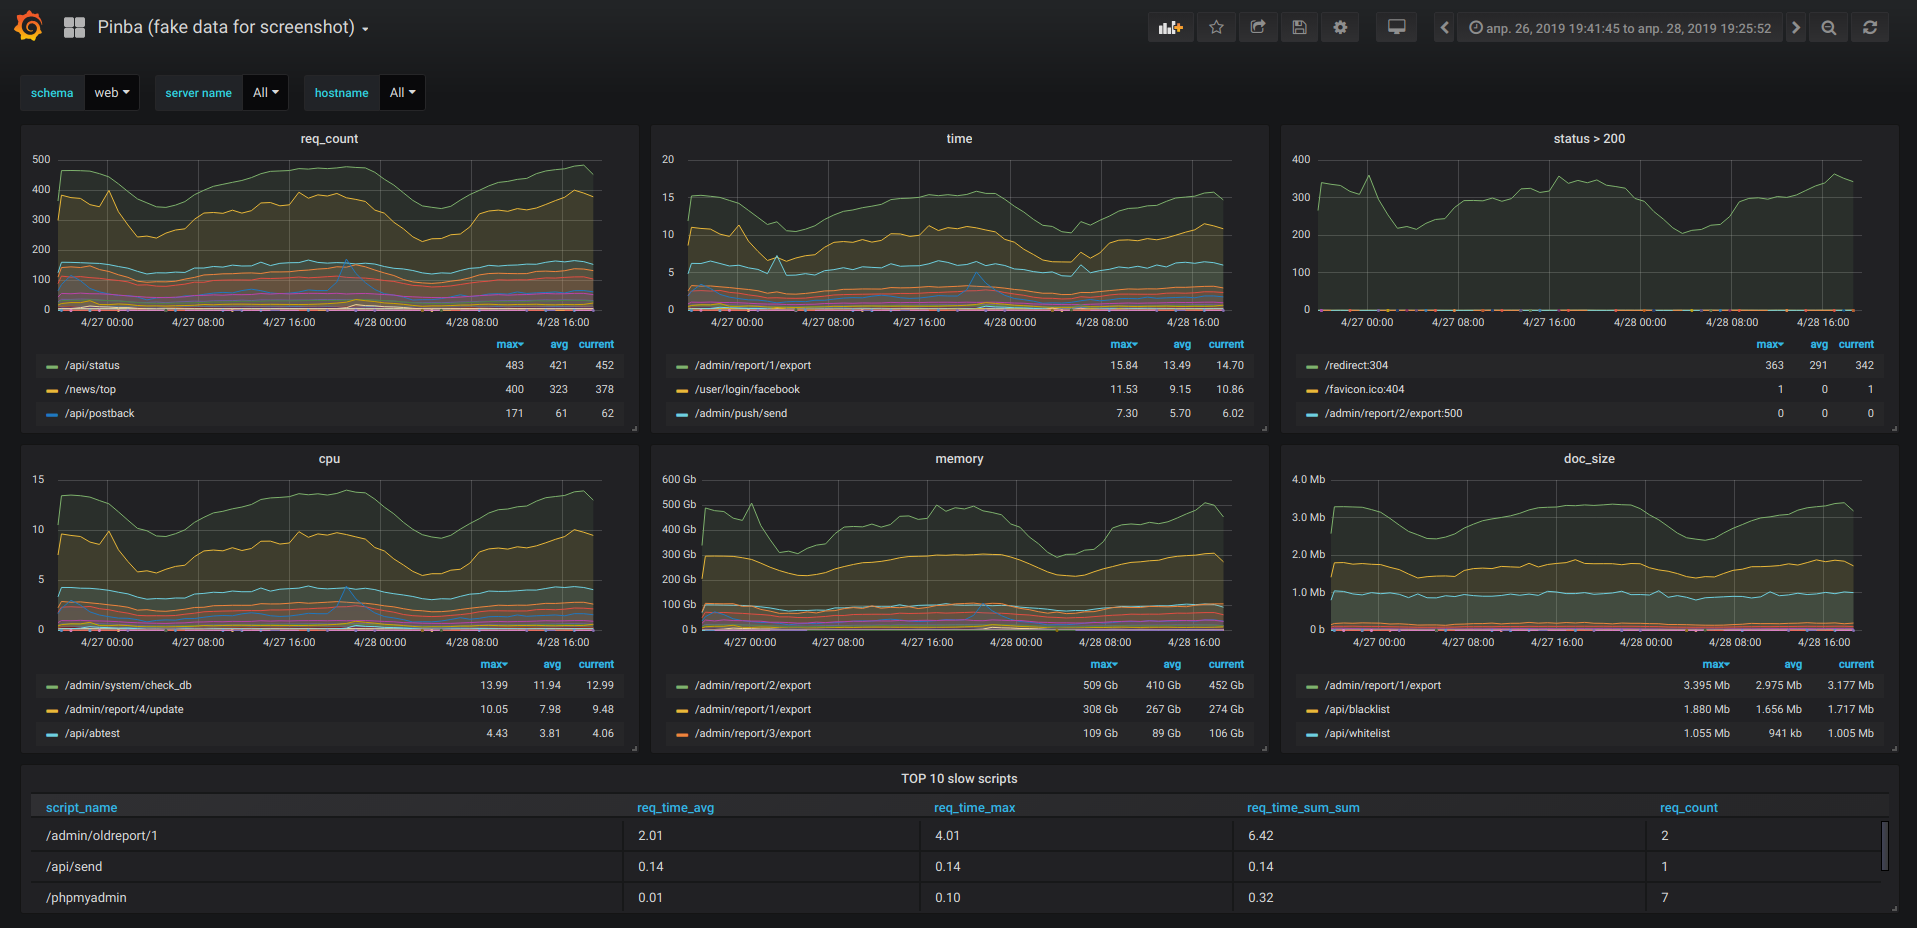 Statistics and monitoring of PHP scripts in real time